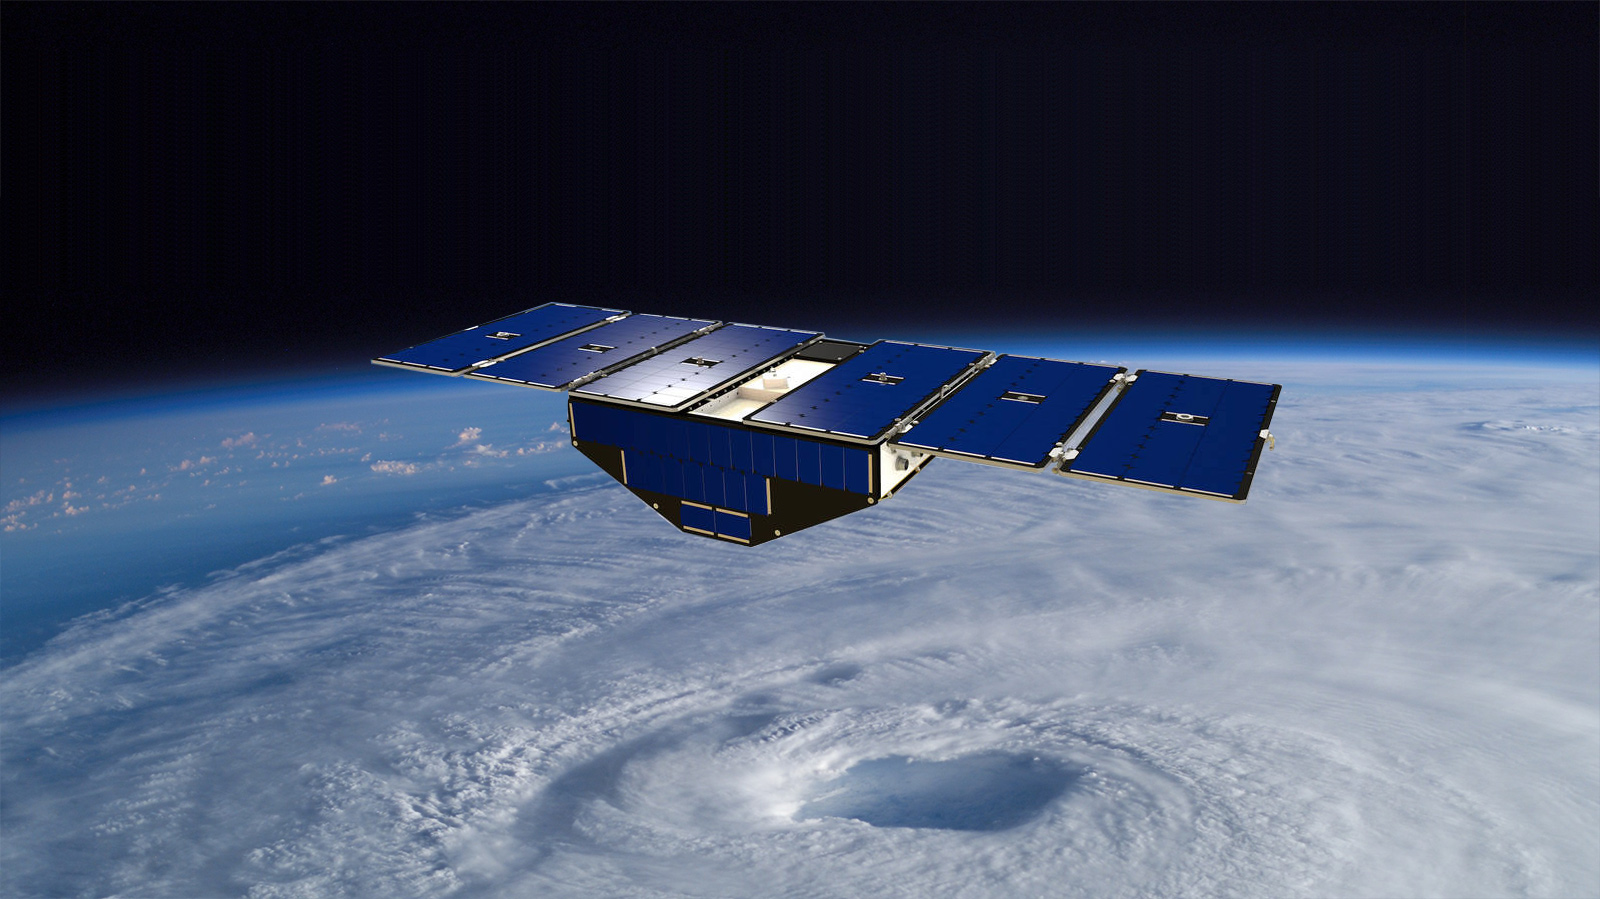 NASA Extends Cyclone Global Navigation Satellite System Mission